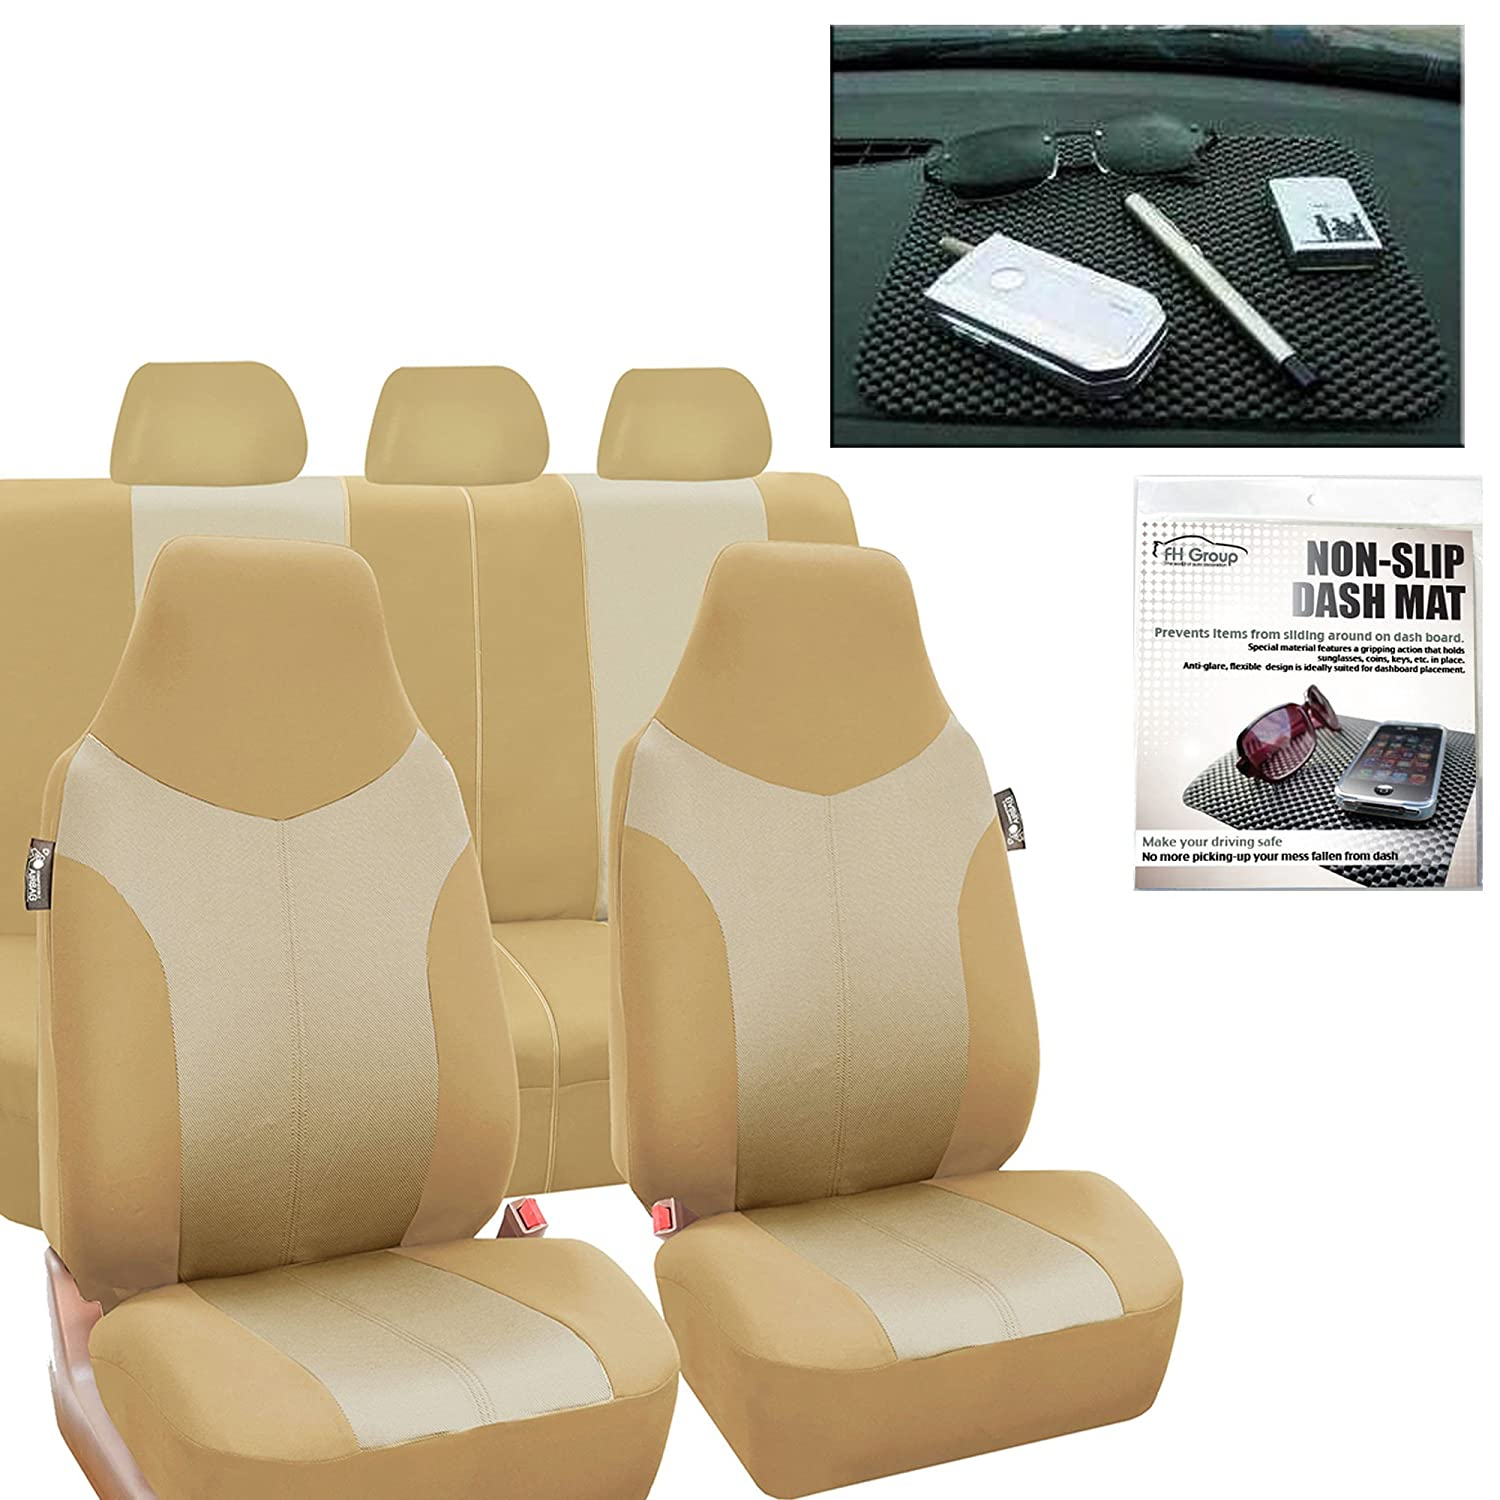 FH Group FH-FB101115 Supreme Twill Fabric High Back Car Seat Covers Beige/Tan (Full Set Airbag Ready and Split Rear Bench) FH1002 Non-Slip Dash Pad-Fit Most Car, Truck, SUV, or Van